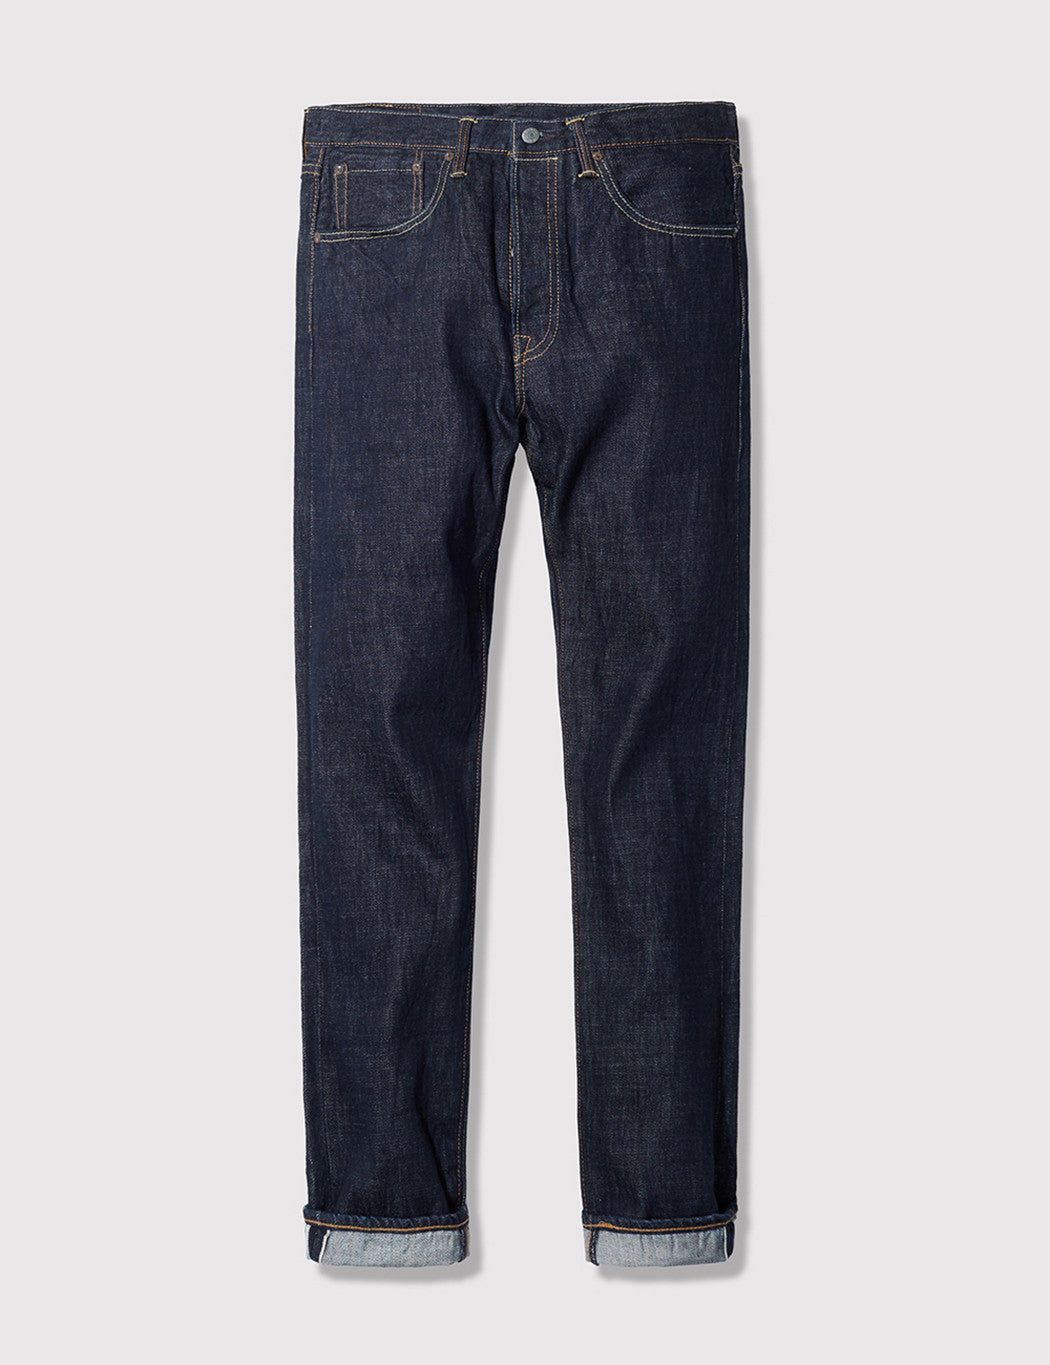 Levis 501 Slevage Raw Jeans (Relaxed) - Long Day